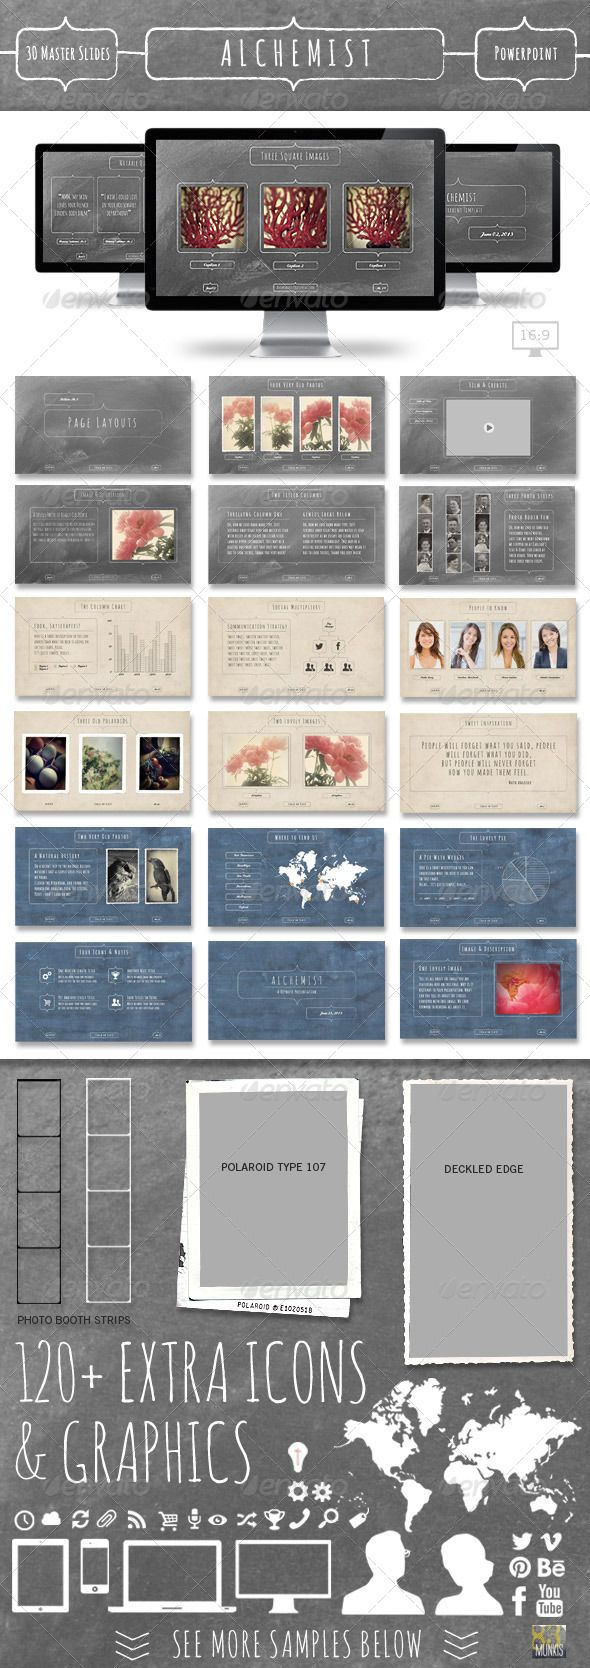 alchemist powerpoint template midnight blue the alchemist and alchemist powerpoint template graphicriver transform you ideas and images into a stunning presentation the